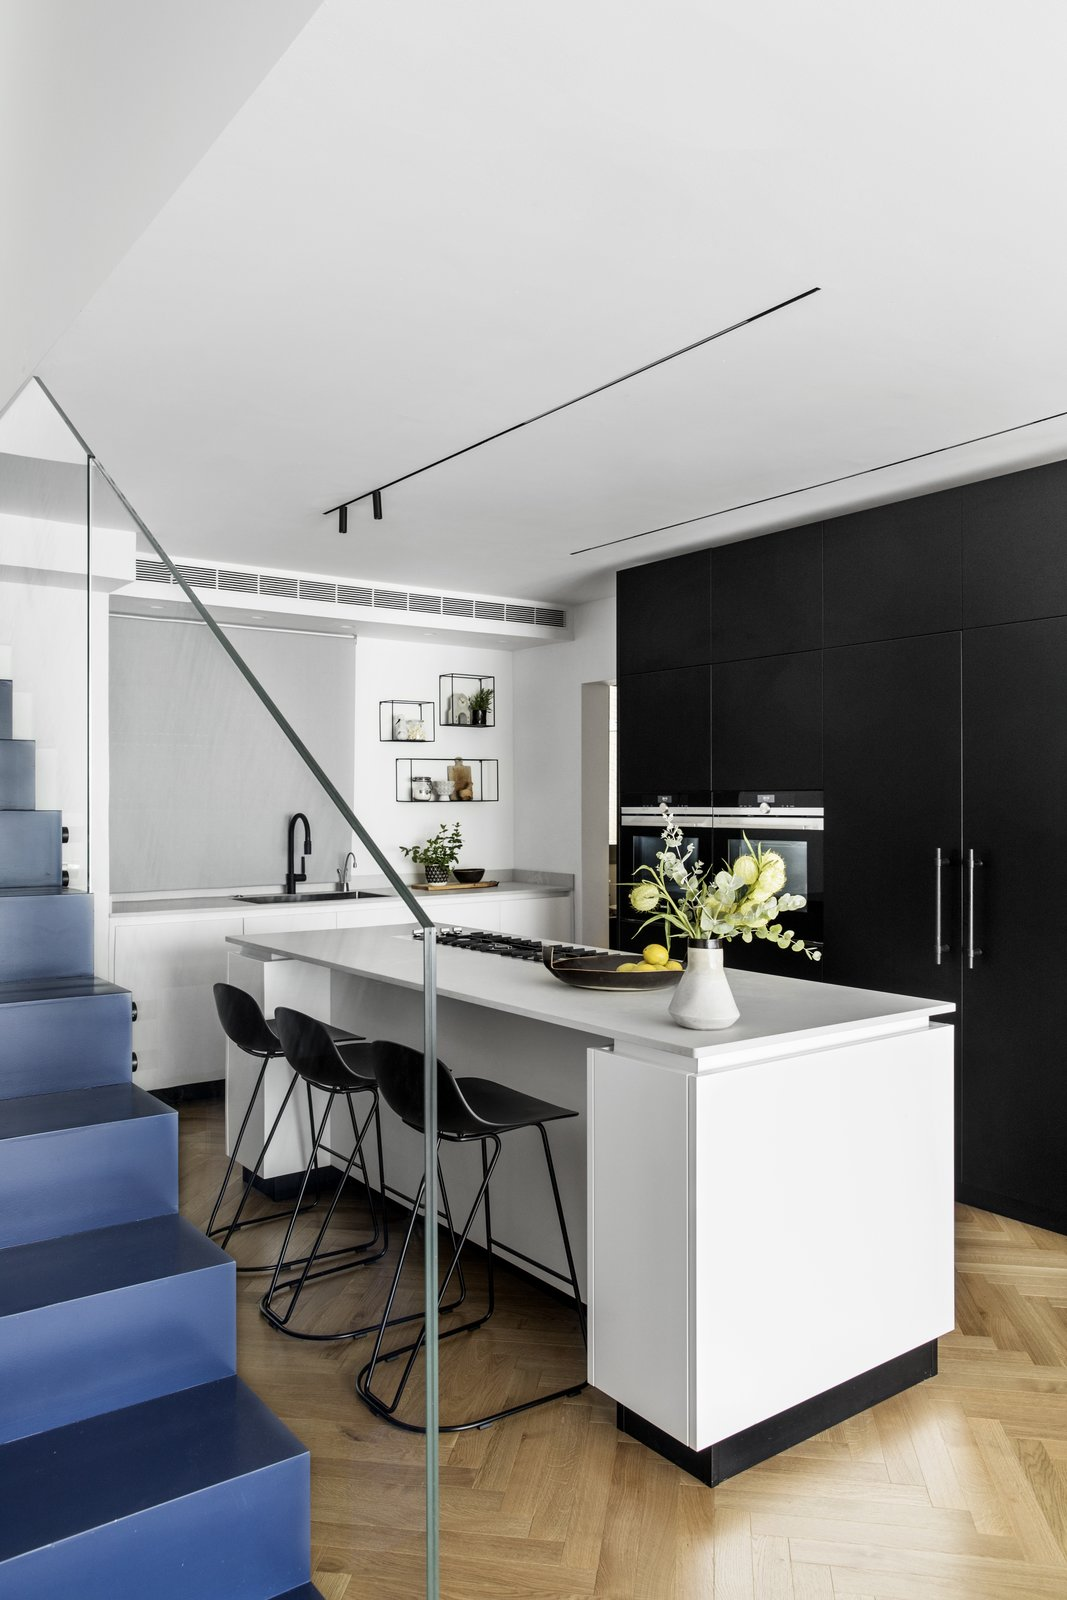 Kitchen, Refrigerator, Engineered Quartz, Light Hardwood, Track, and Undermount In an apartment renovation in Tel Aviv by Maya Sheinberger, a white and black kitchen comes together in a white island with black base and black bar stools by infiniti.  Best Kitchen Track Undermount Refrigerator Photos from M Apartment